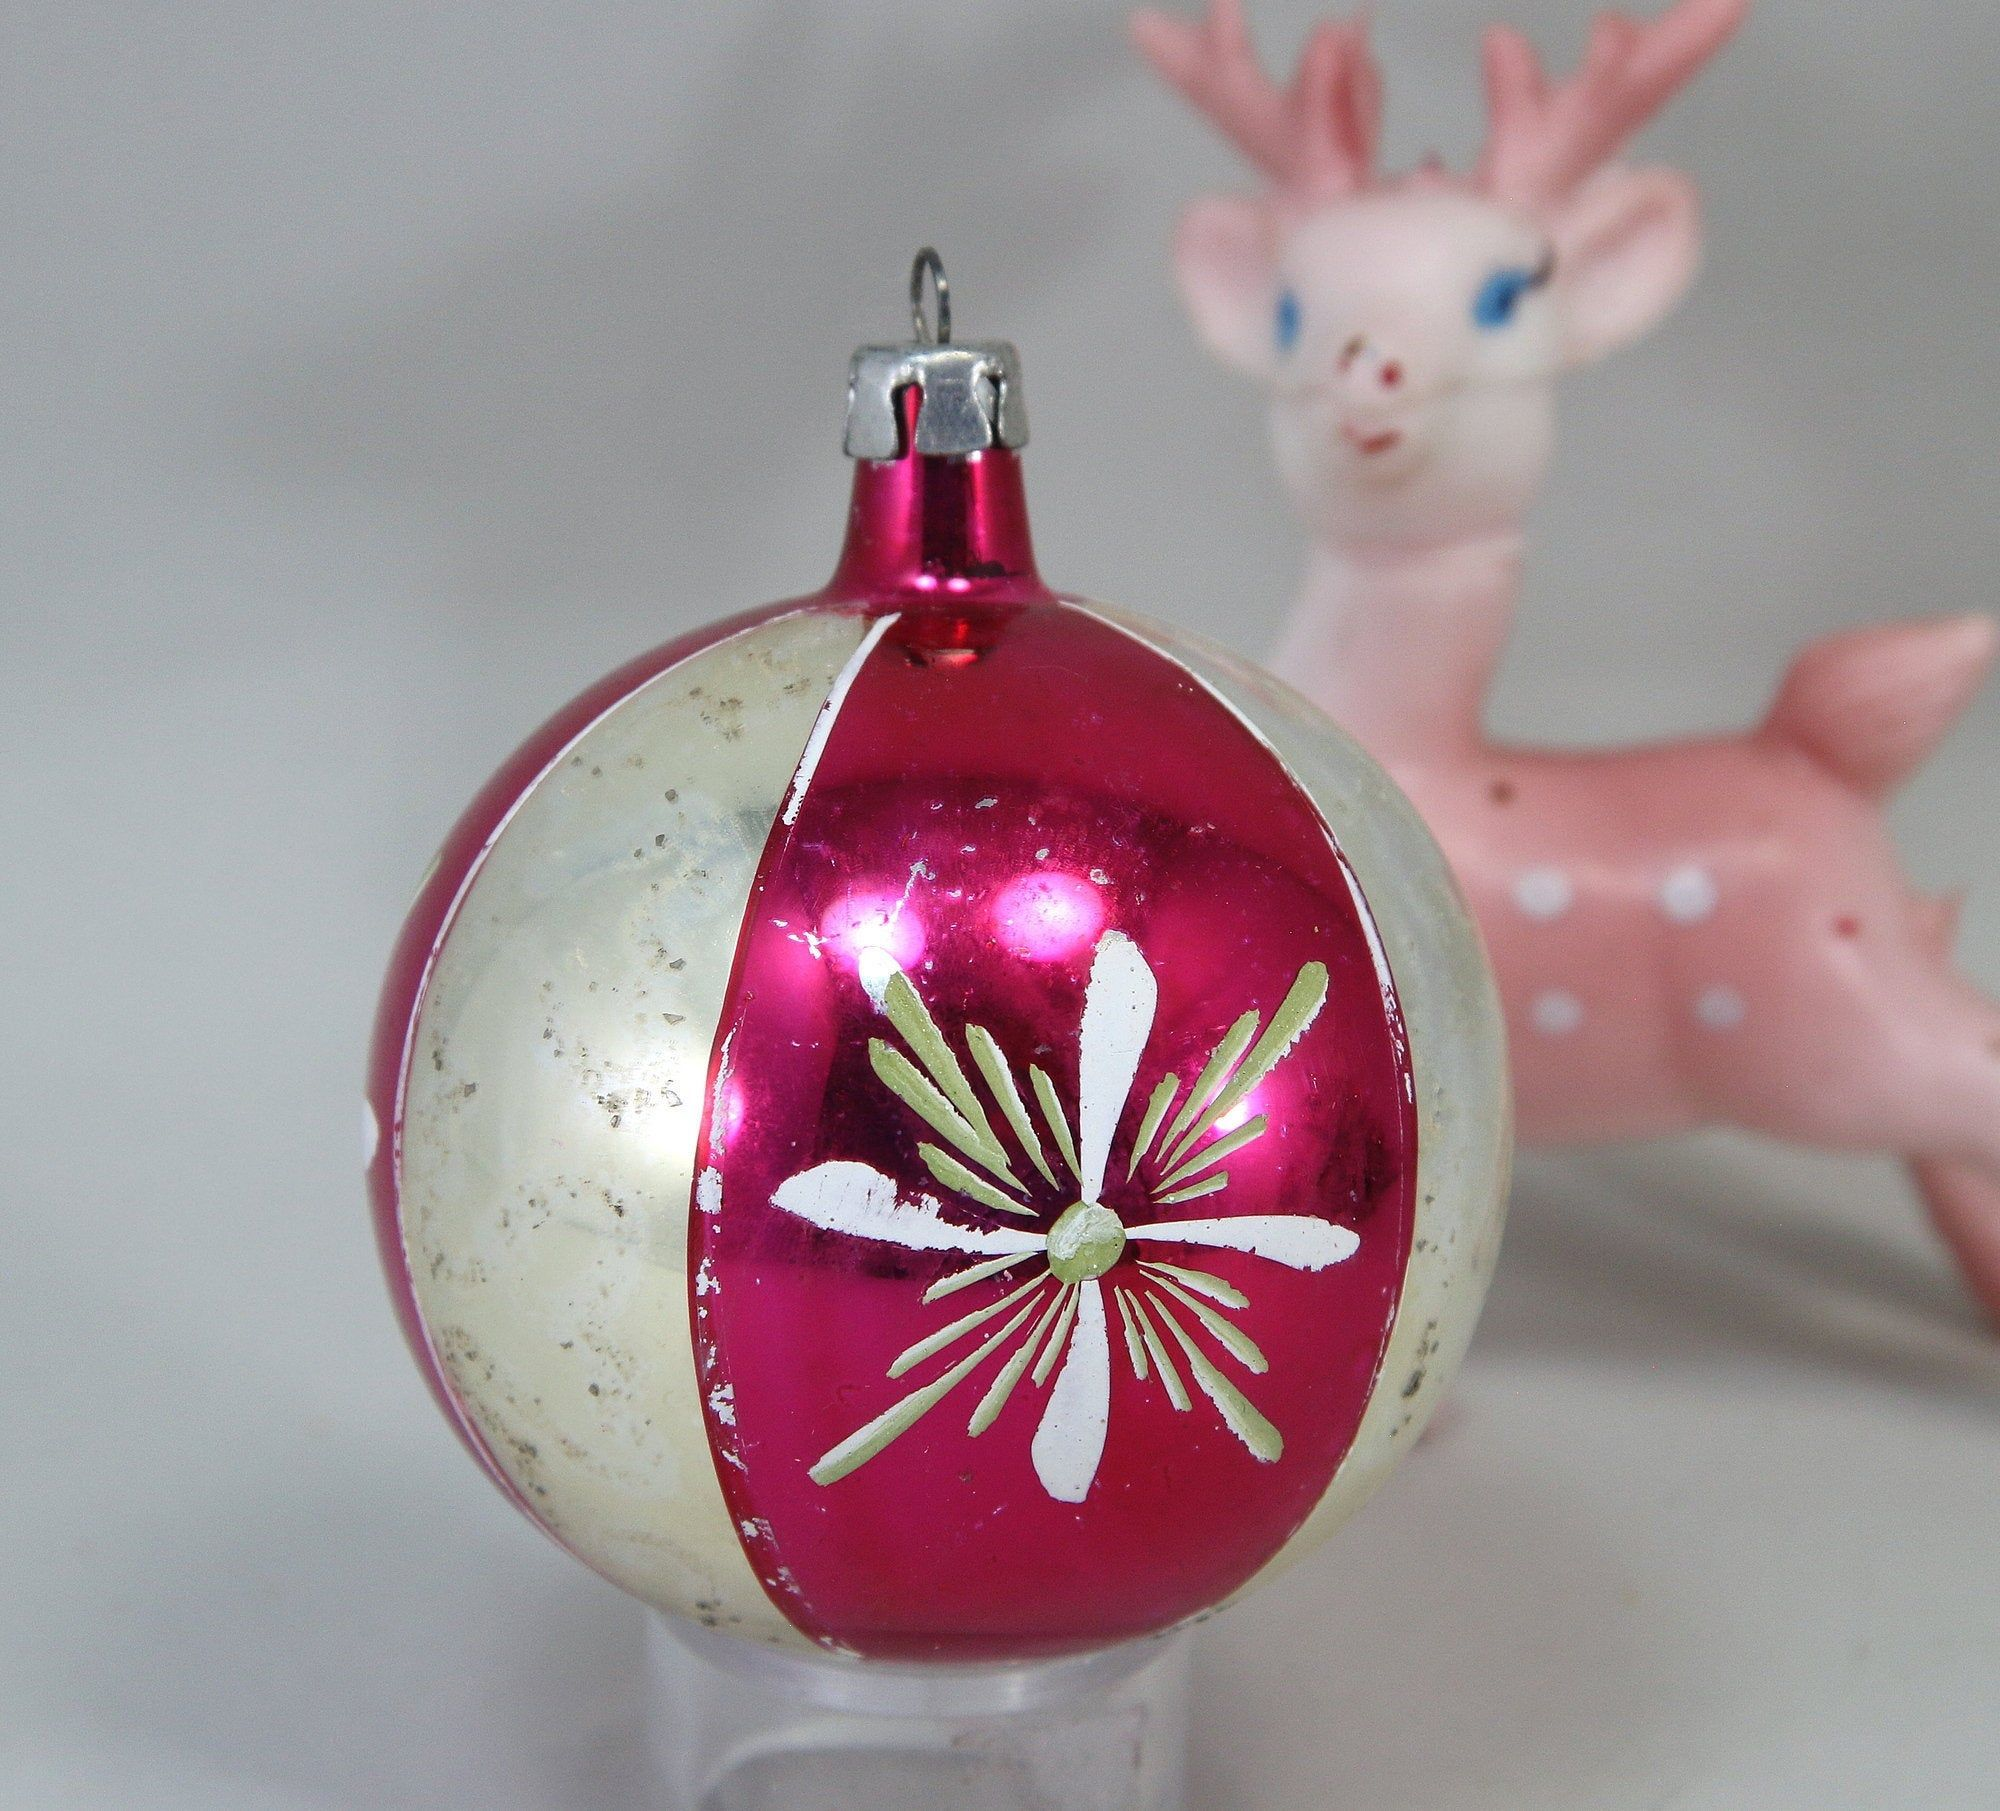 Vintage Hand Blown Poland Hand Painted Christmas Ornament Hot Etsy In 2020 Painted Christmas Ornaments Christmas Ornaments Hand Blown